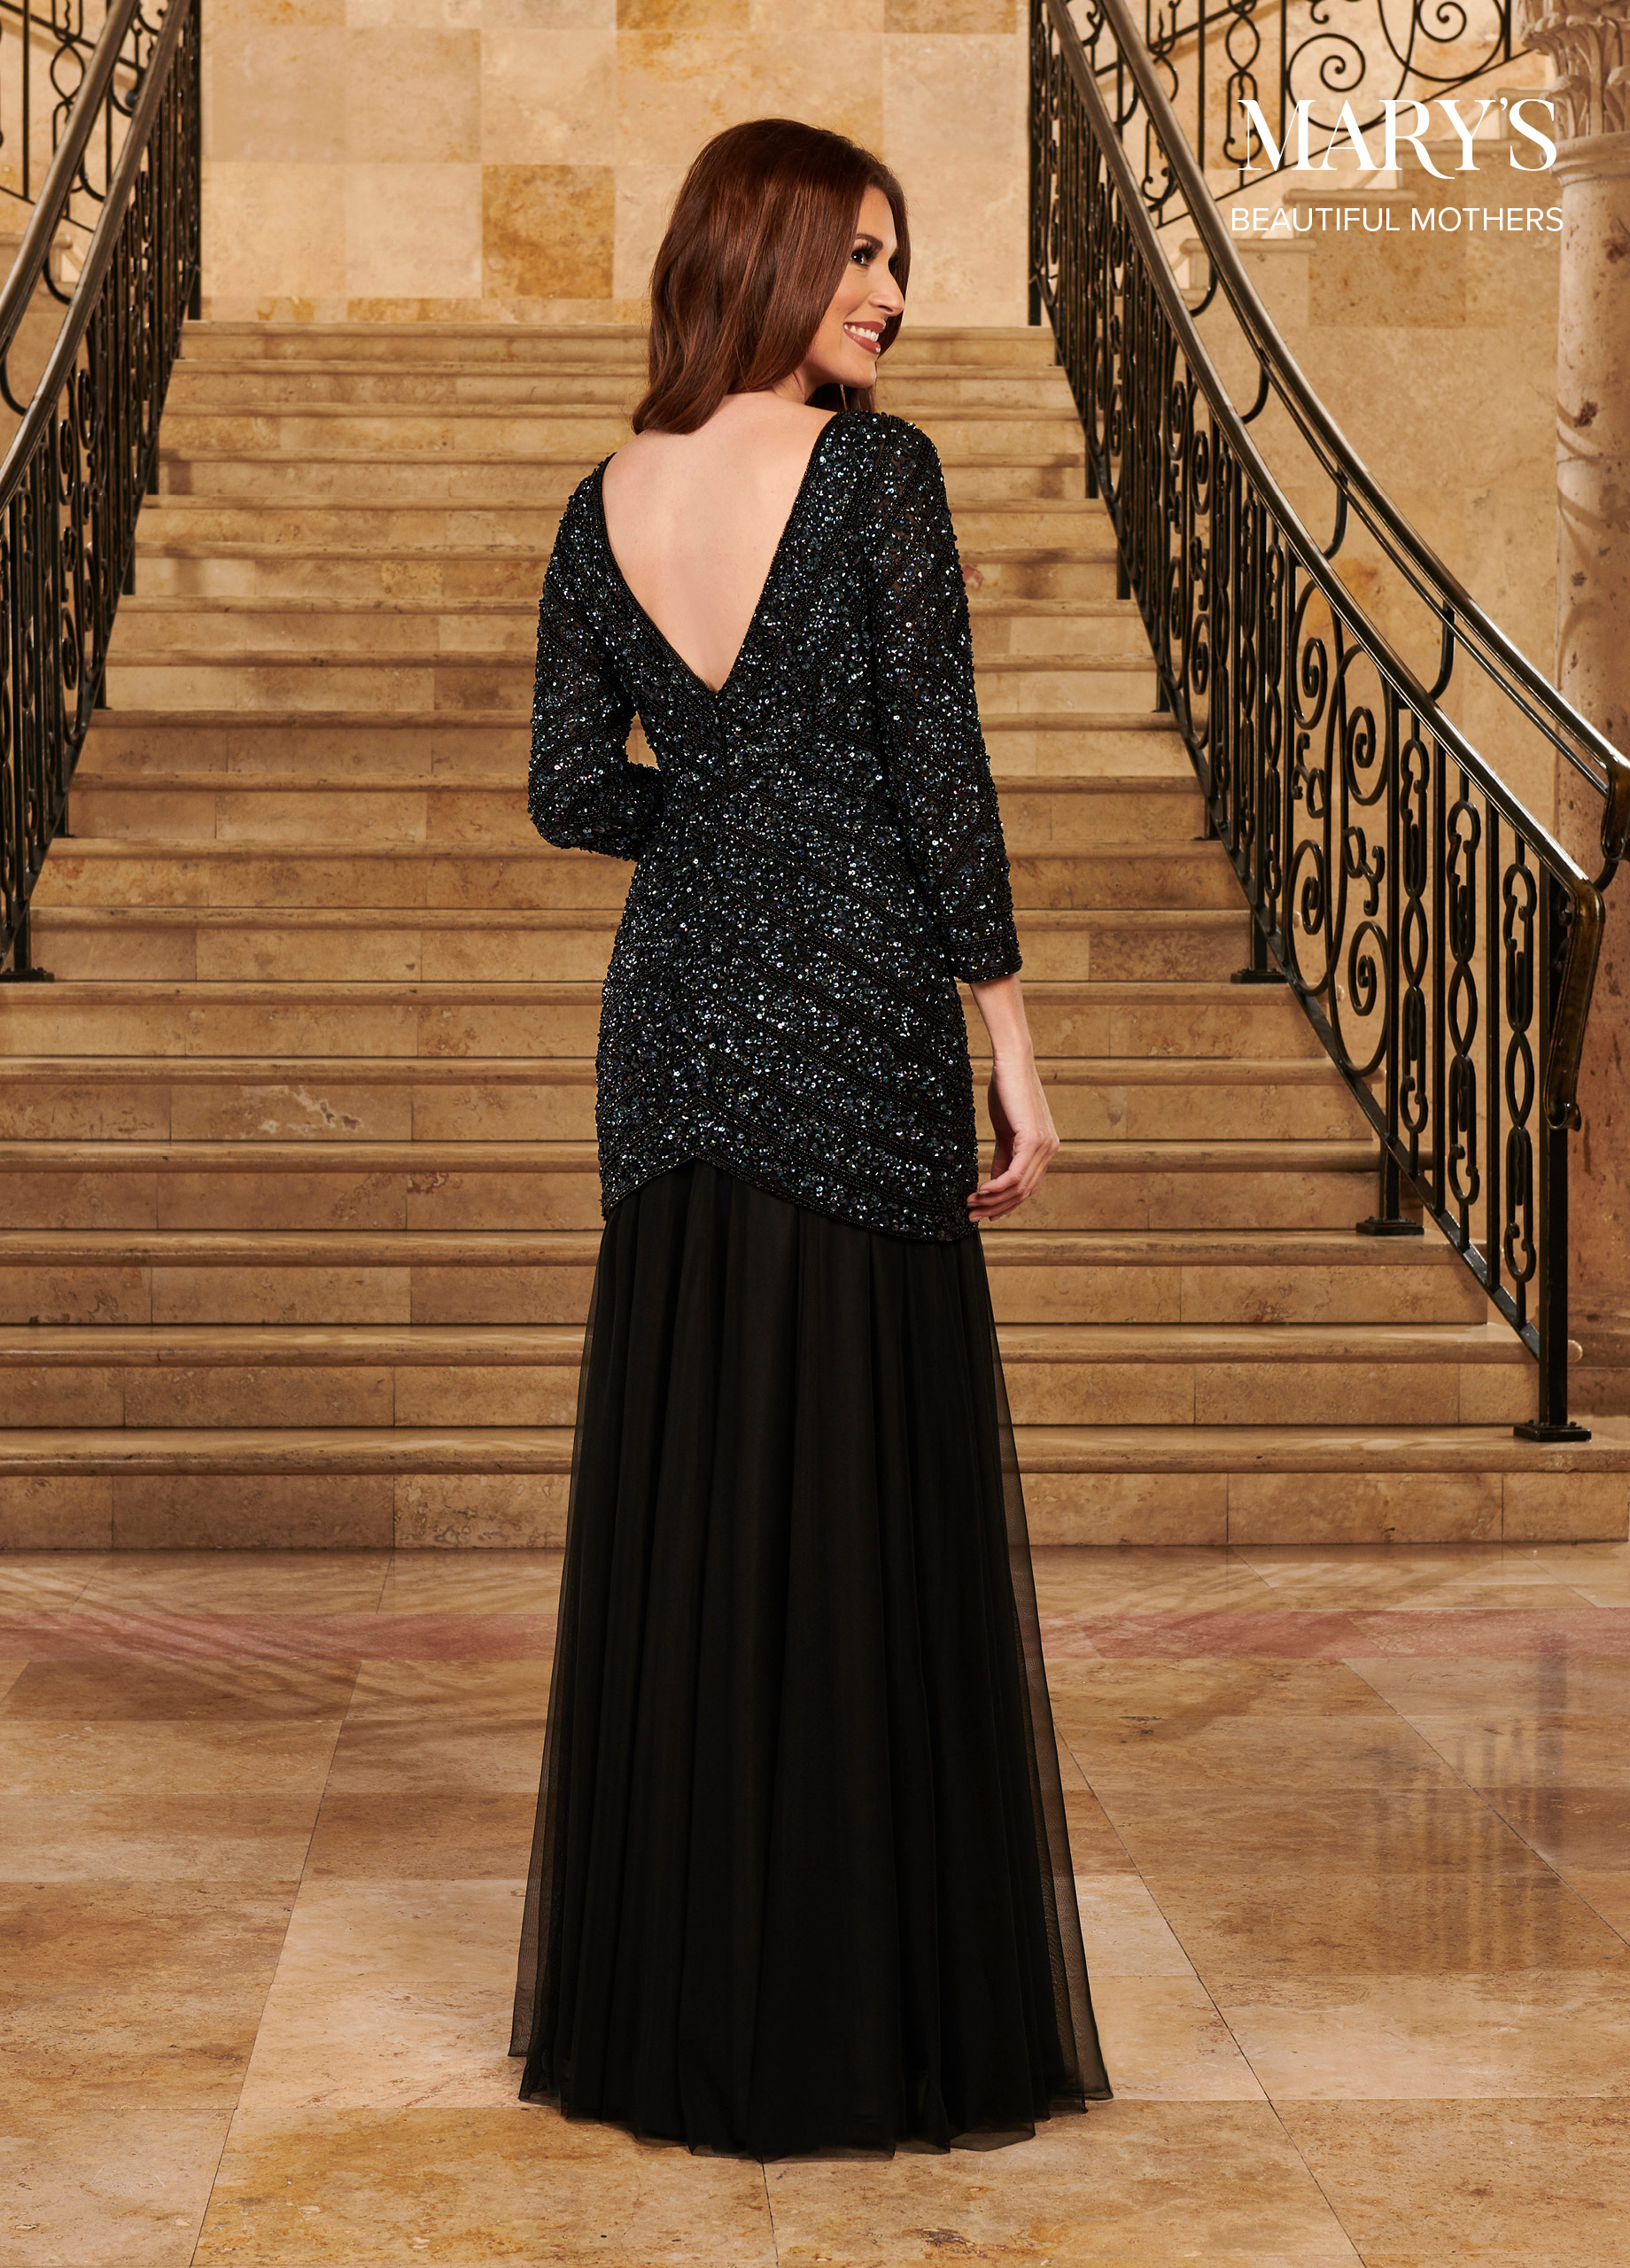 Mother Of The Bride Dresses   Beautiful Mothers   Style - MB8102